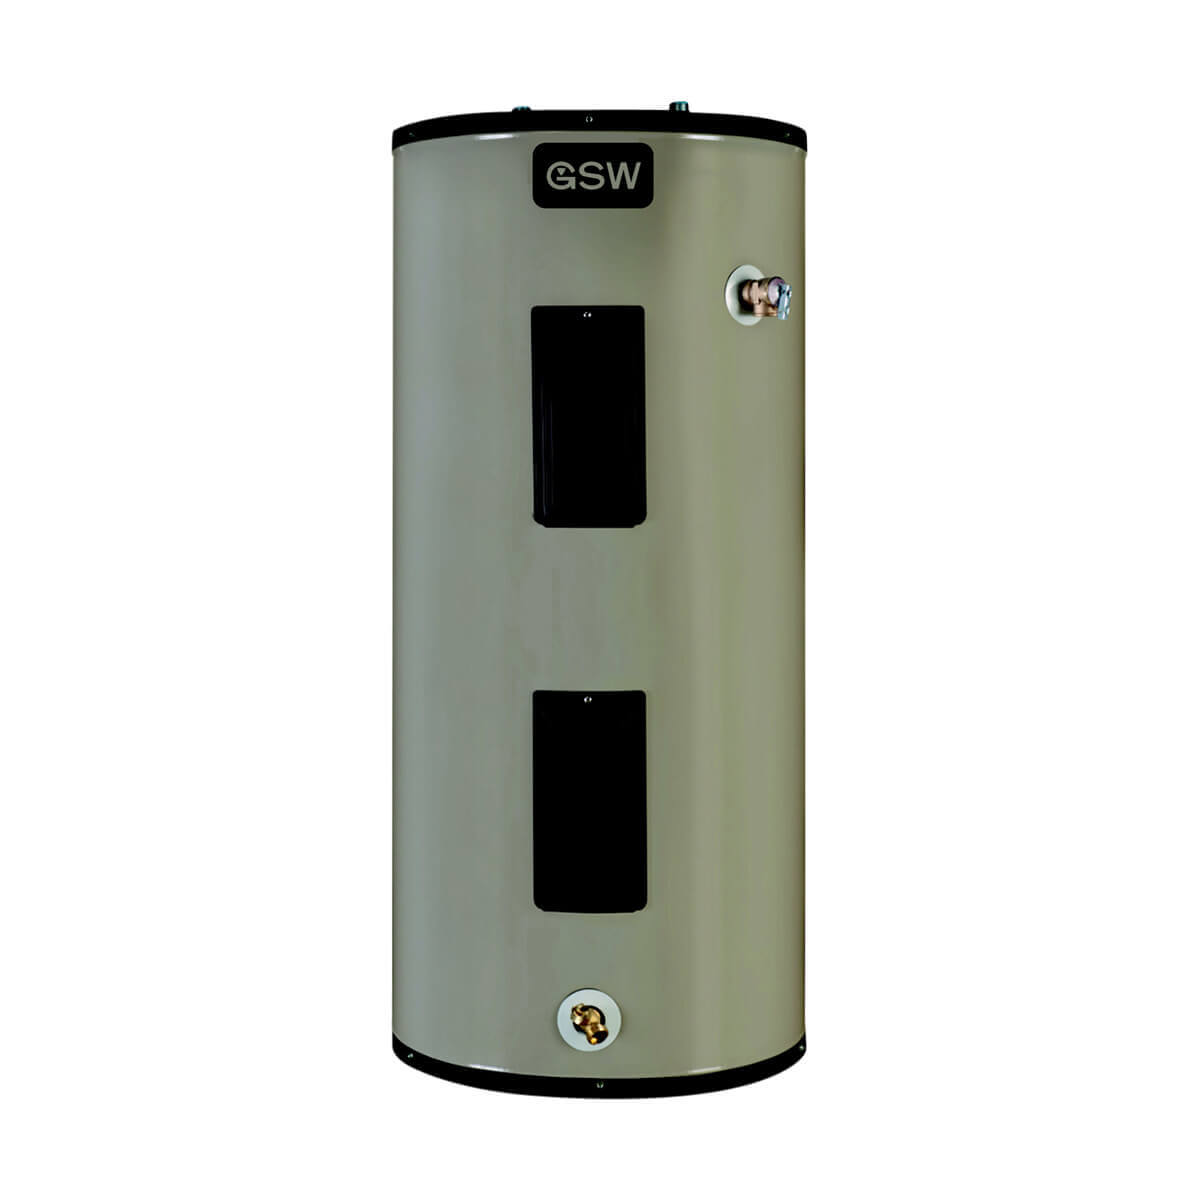 50 Gallon Electric Hot Water Heater  - A5190